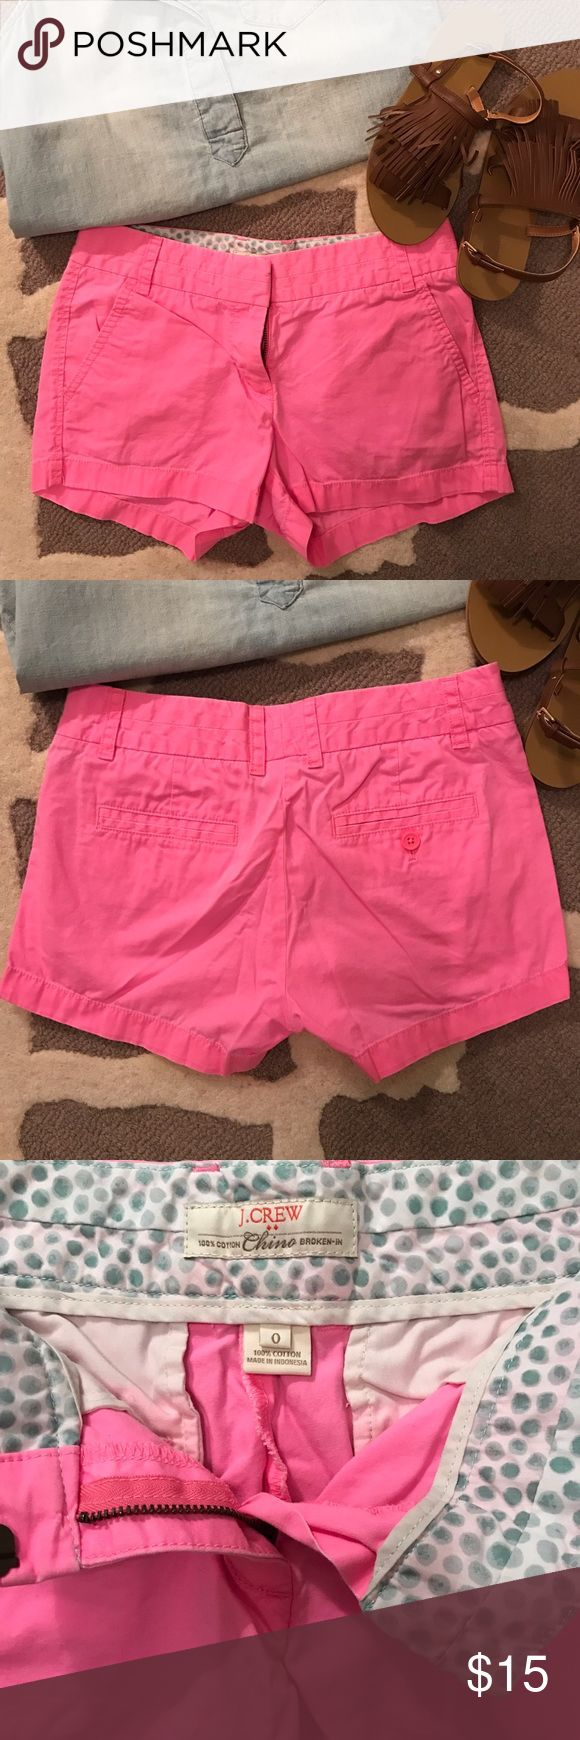 Selling this Neon Pink J.Crew Shorts on Poshmark! My username is: pinkandtulips. #shopmycloset #poshmark #fashion #shopping #style #forsale #J. Crew Factory #Pants